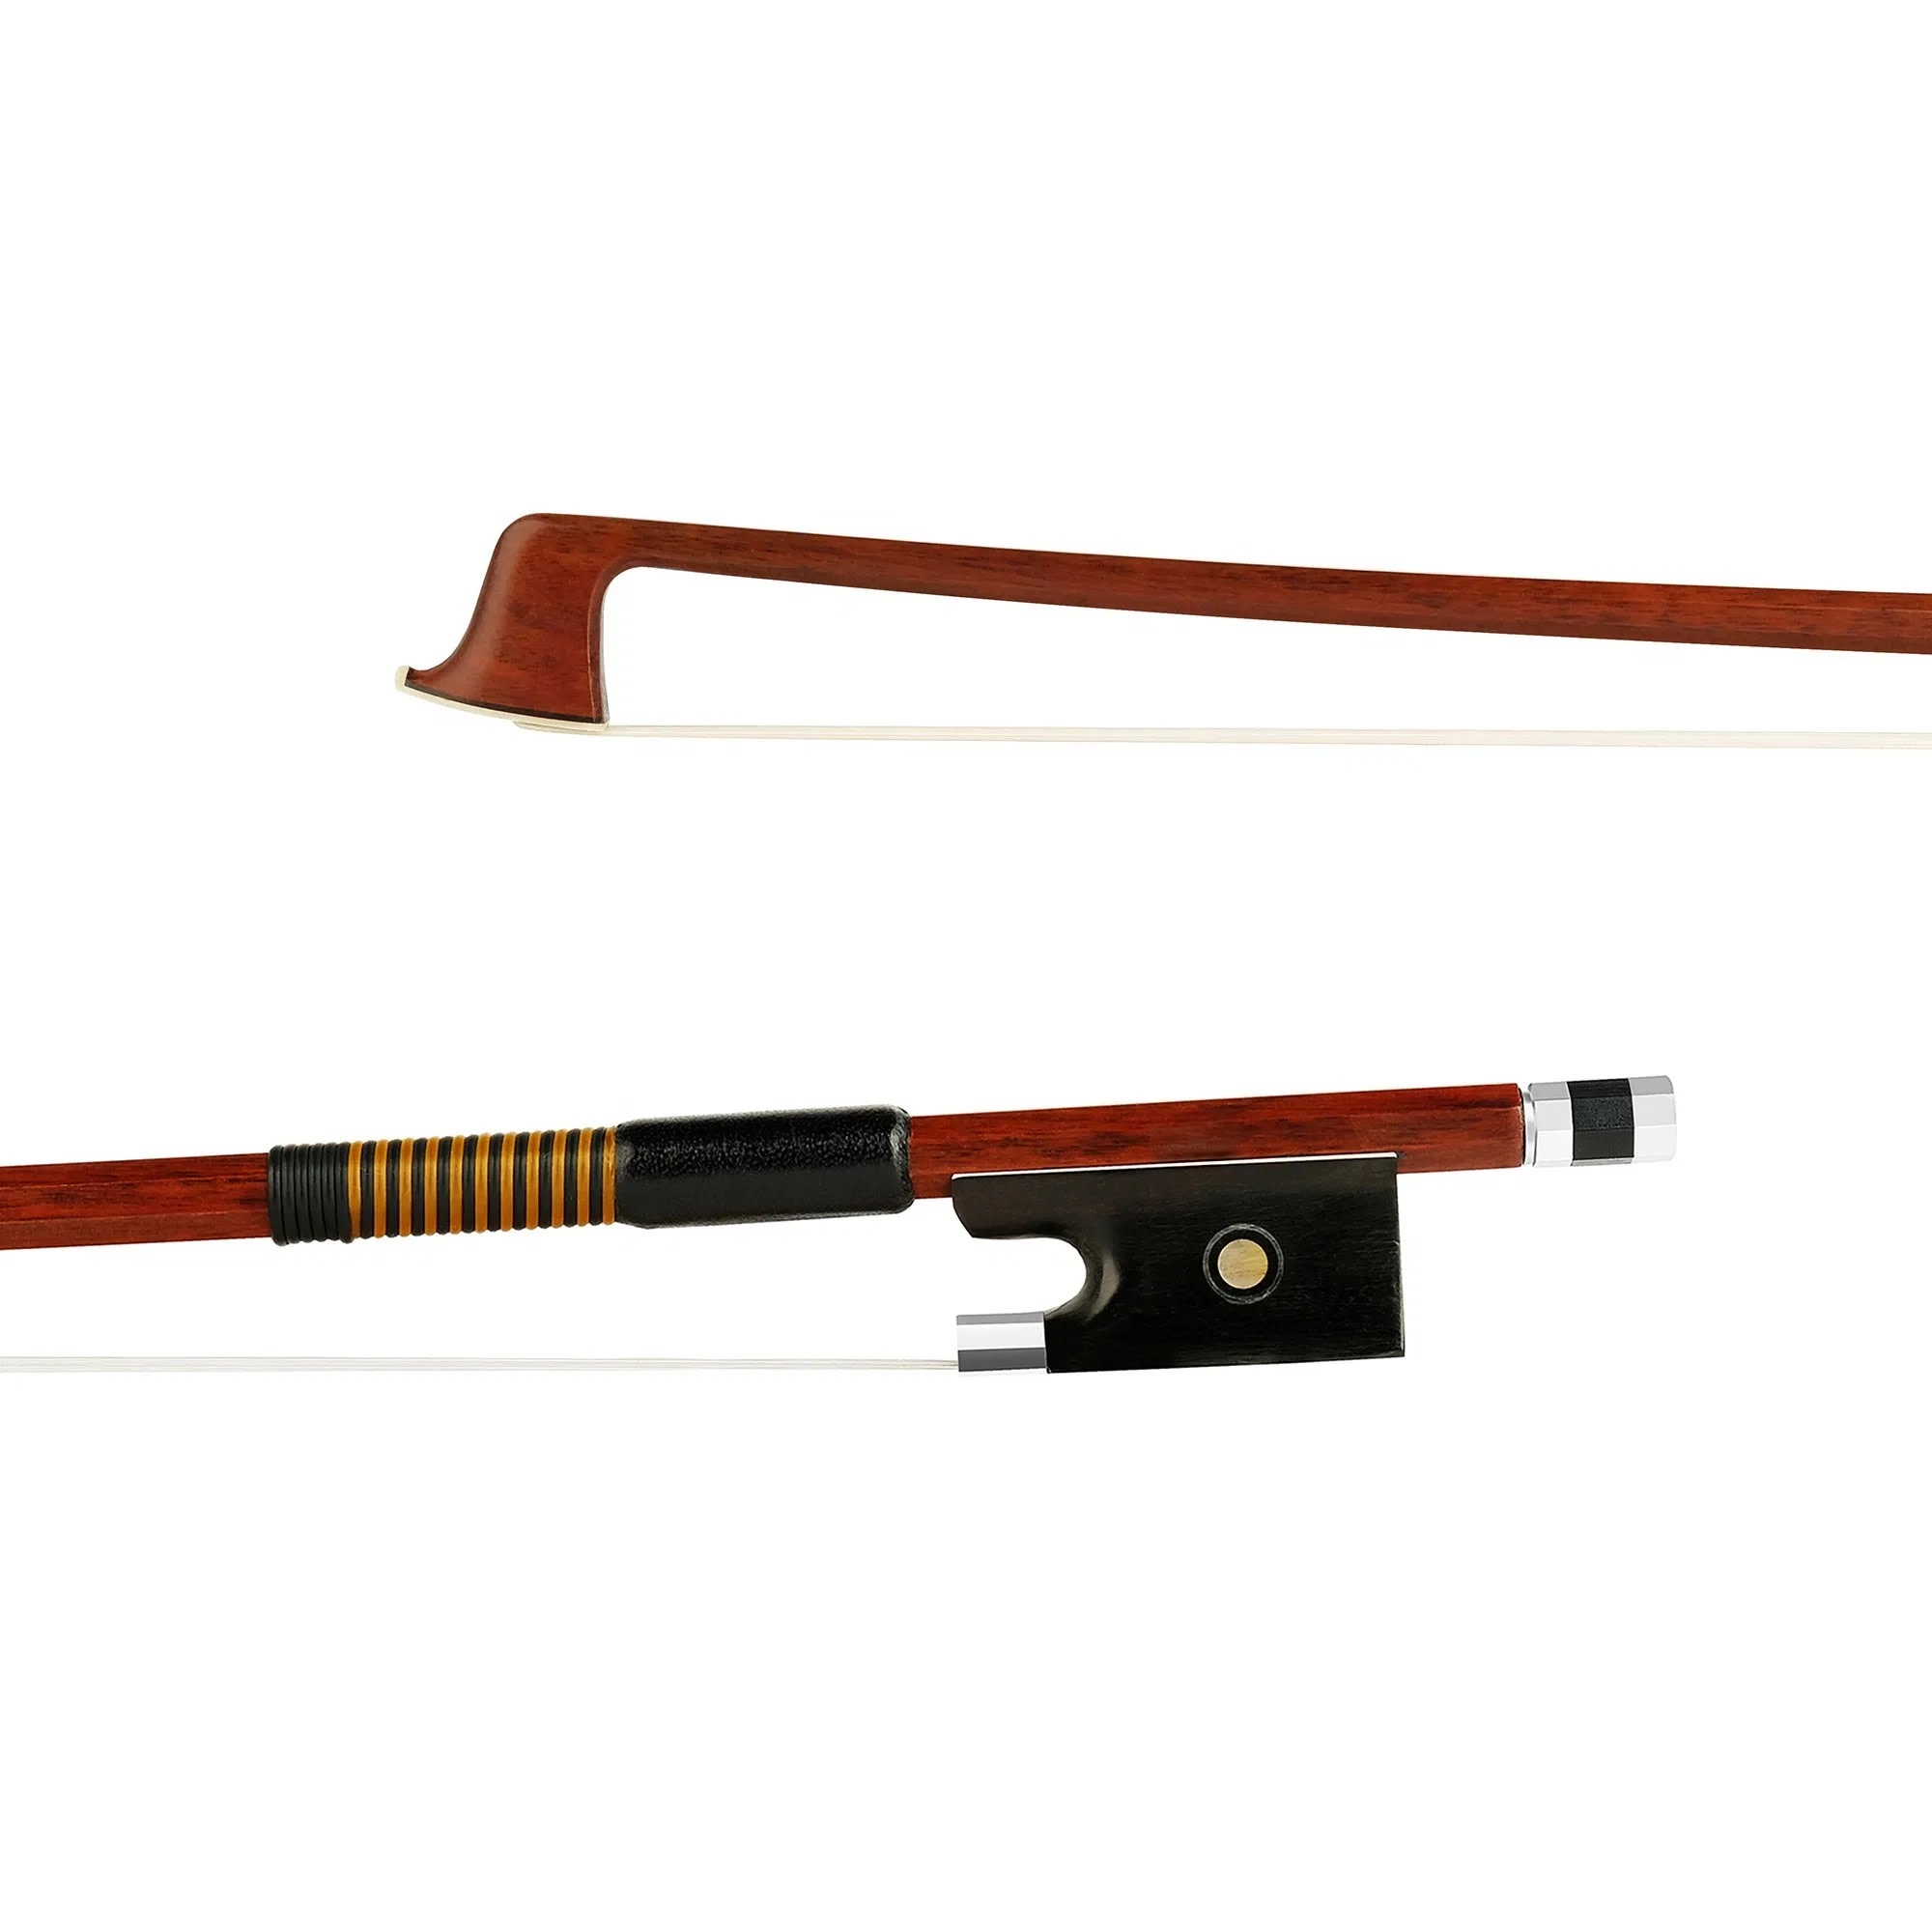 1/4 better student violin bow, unbranded, horsehair